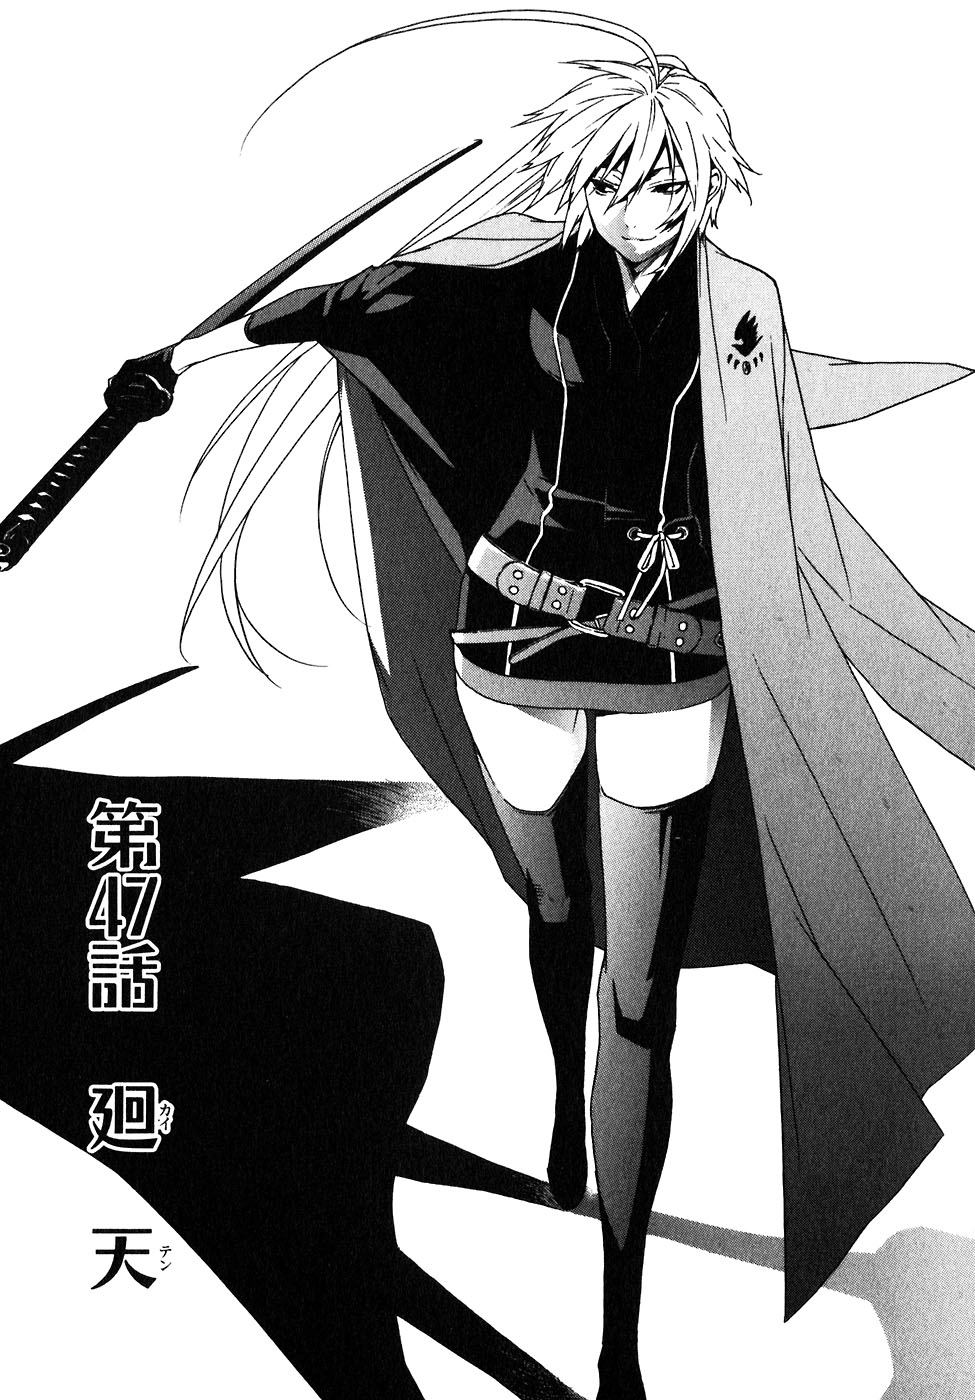 Sekirei manga chapter 047 jpg